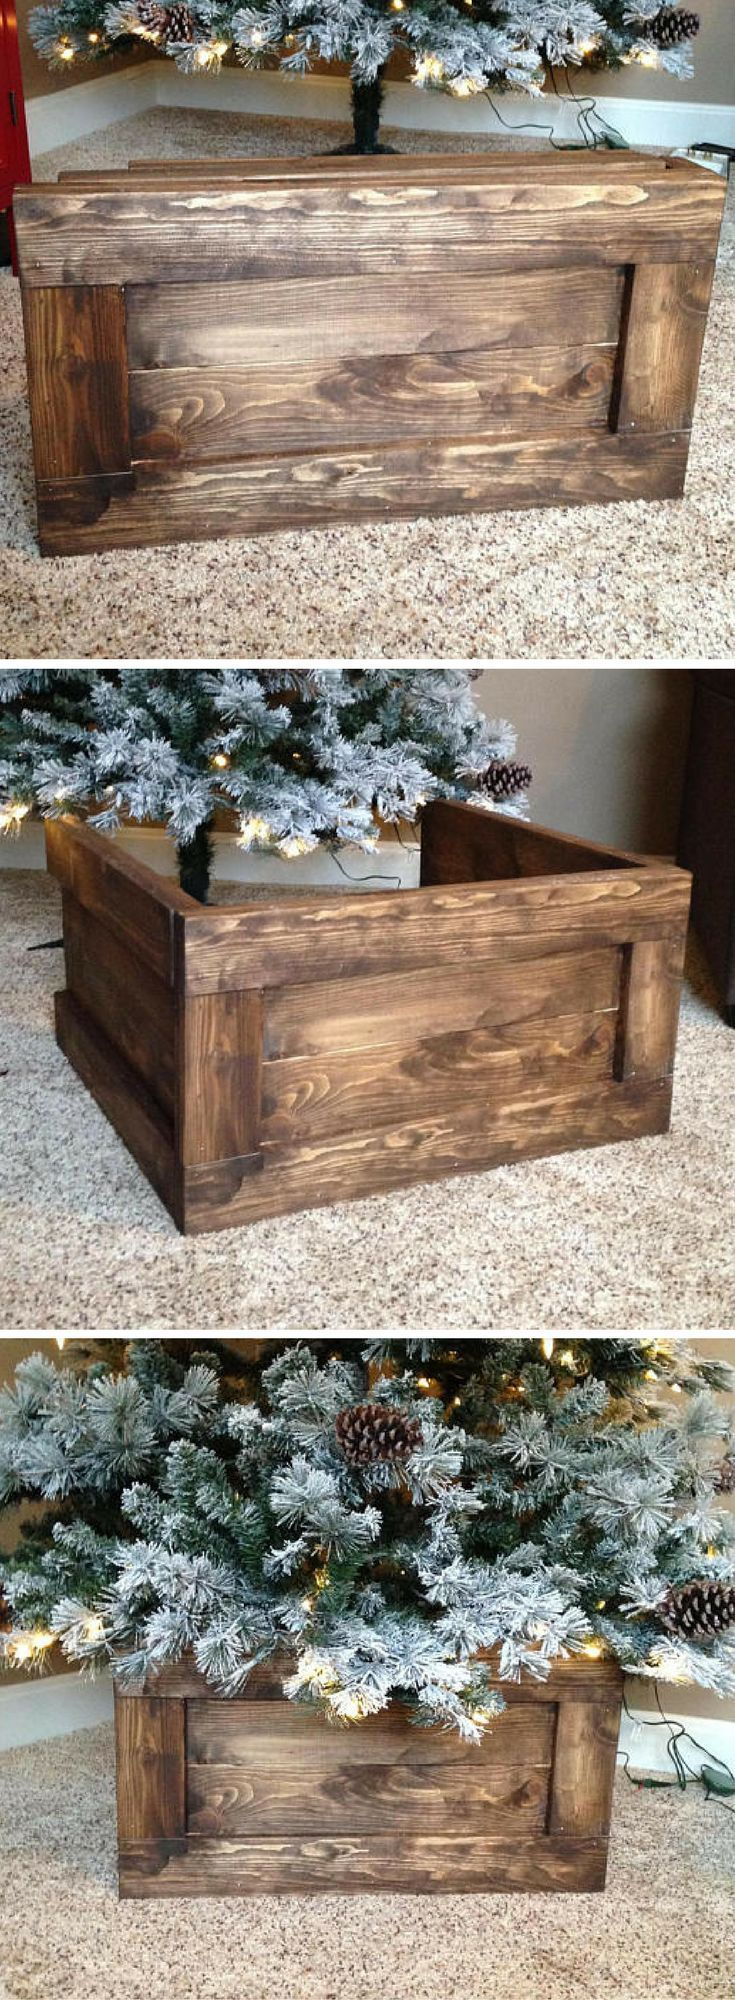 Christmas 2018 Rainbow Trend By John Lewis Box Room Decorating Ideas Smallest Bedr Christmas Decorations Rustic Christmas Tree Box Christmas Tree Box Stand